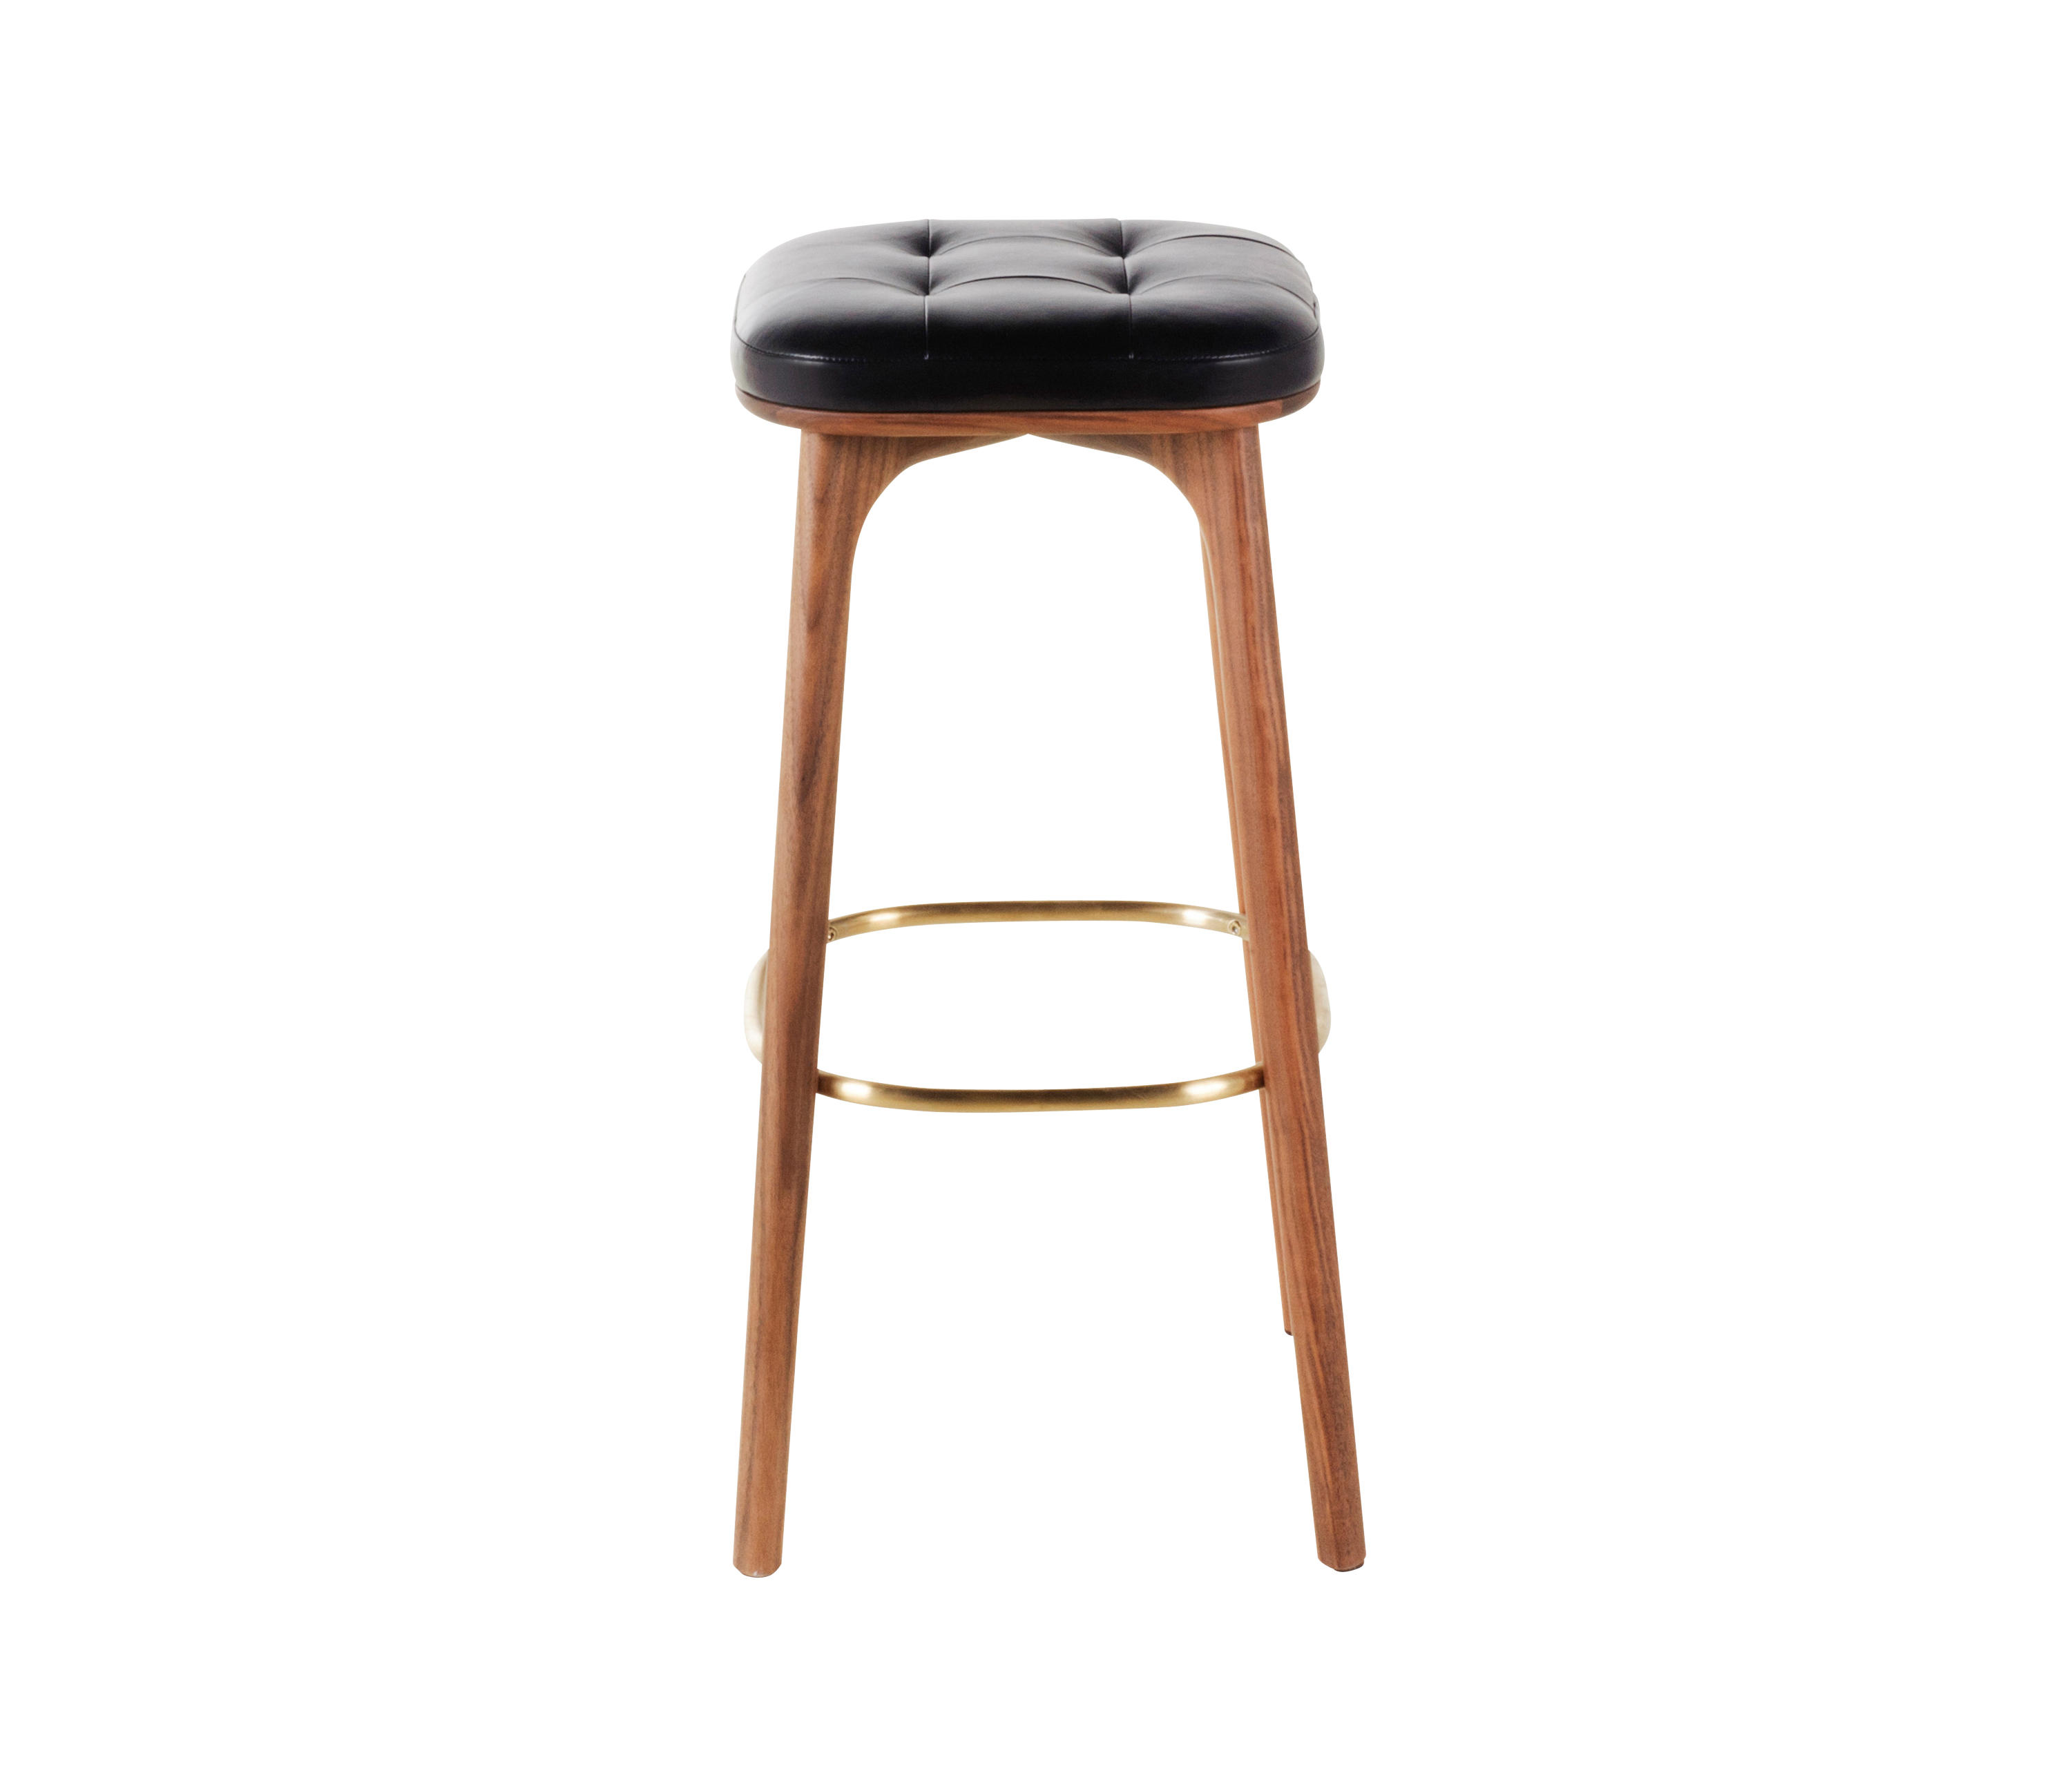 Utility Stool H760 Bar Stools From Stellar Works